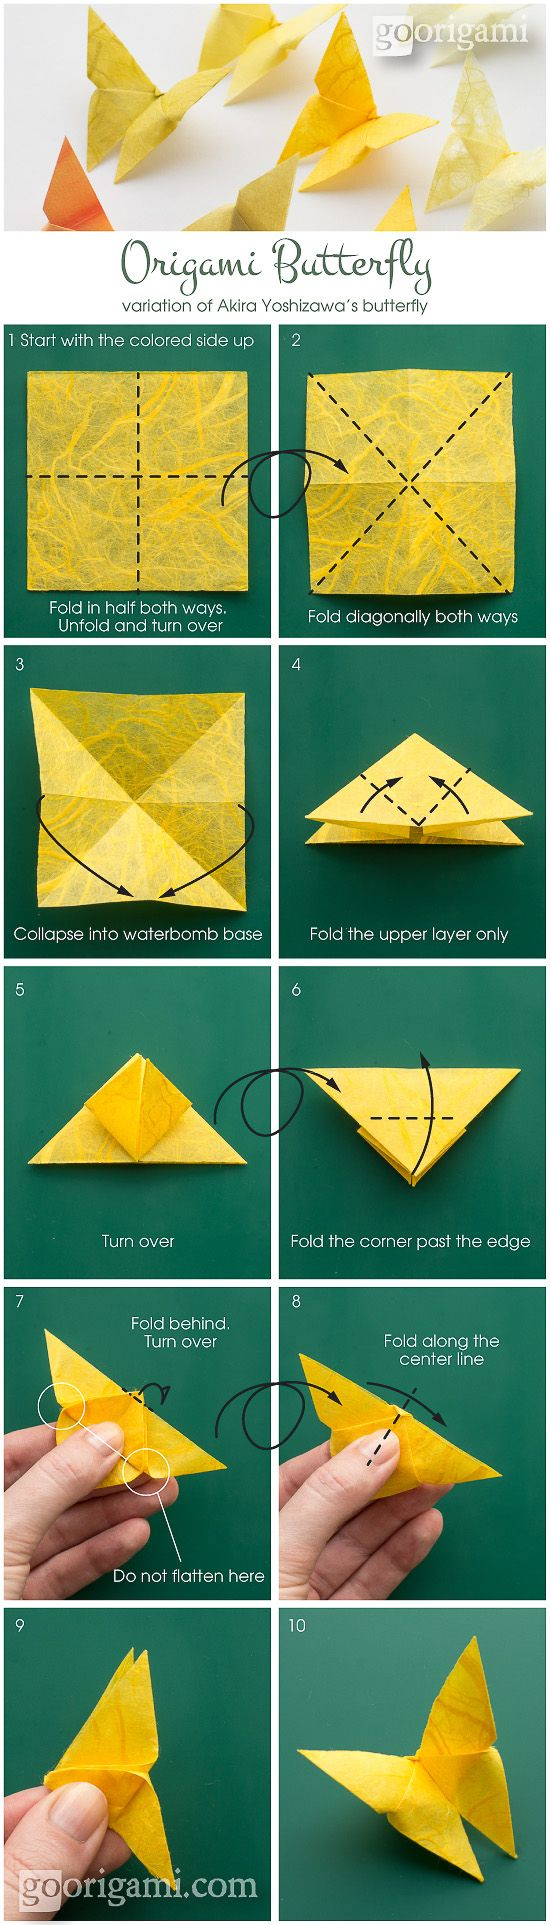 Origami butterflies -- must try with the kids!